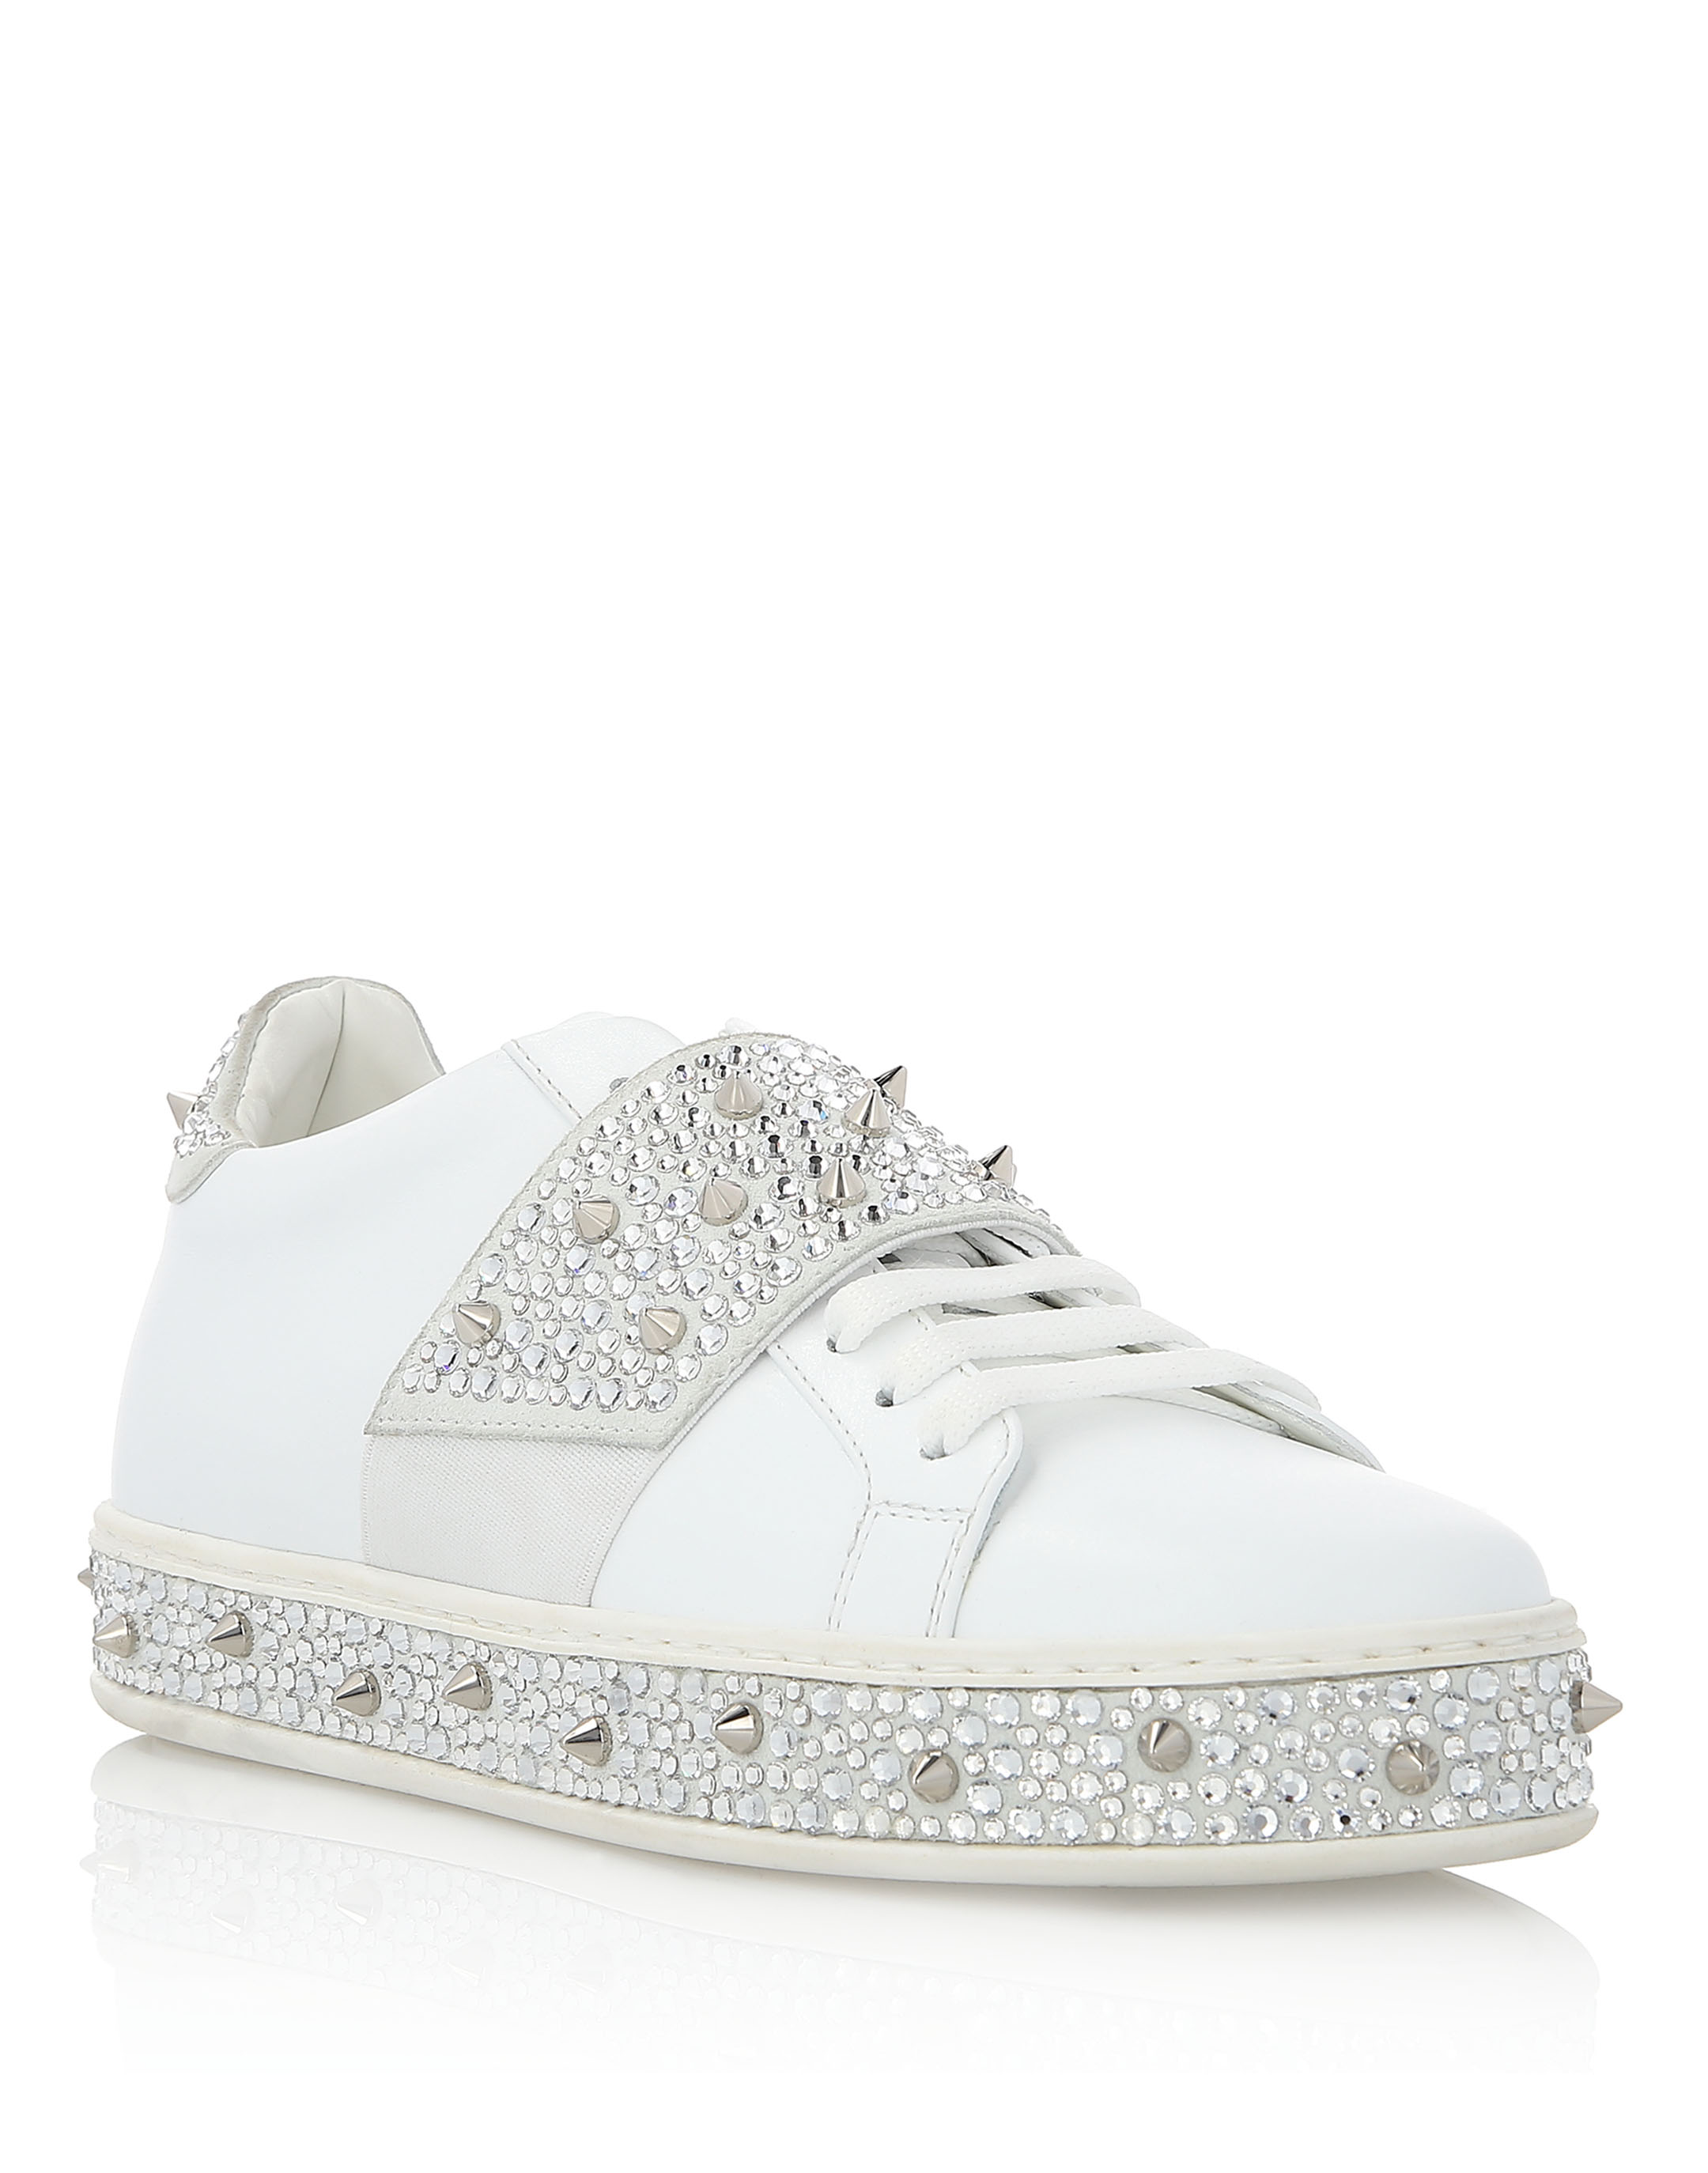 """Lo-Top Sneakers """"Full Of Crystal"""" in White from PHILIPP PLEIN"""